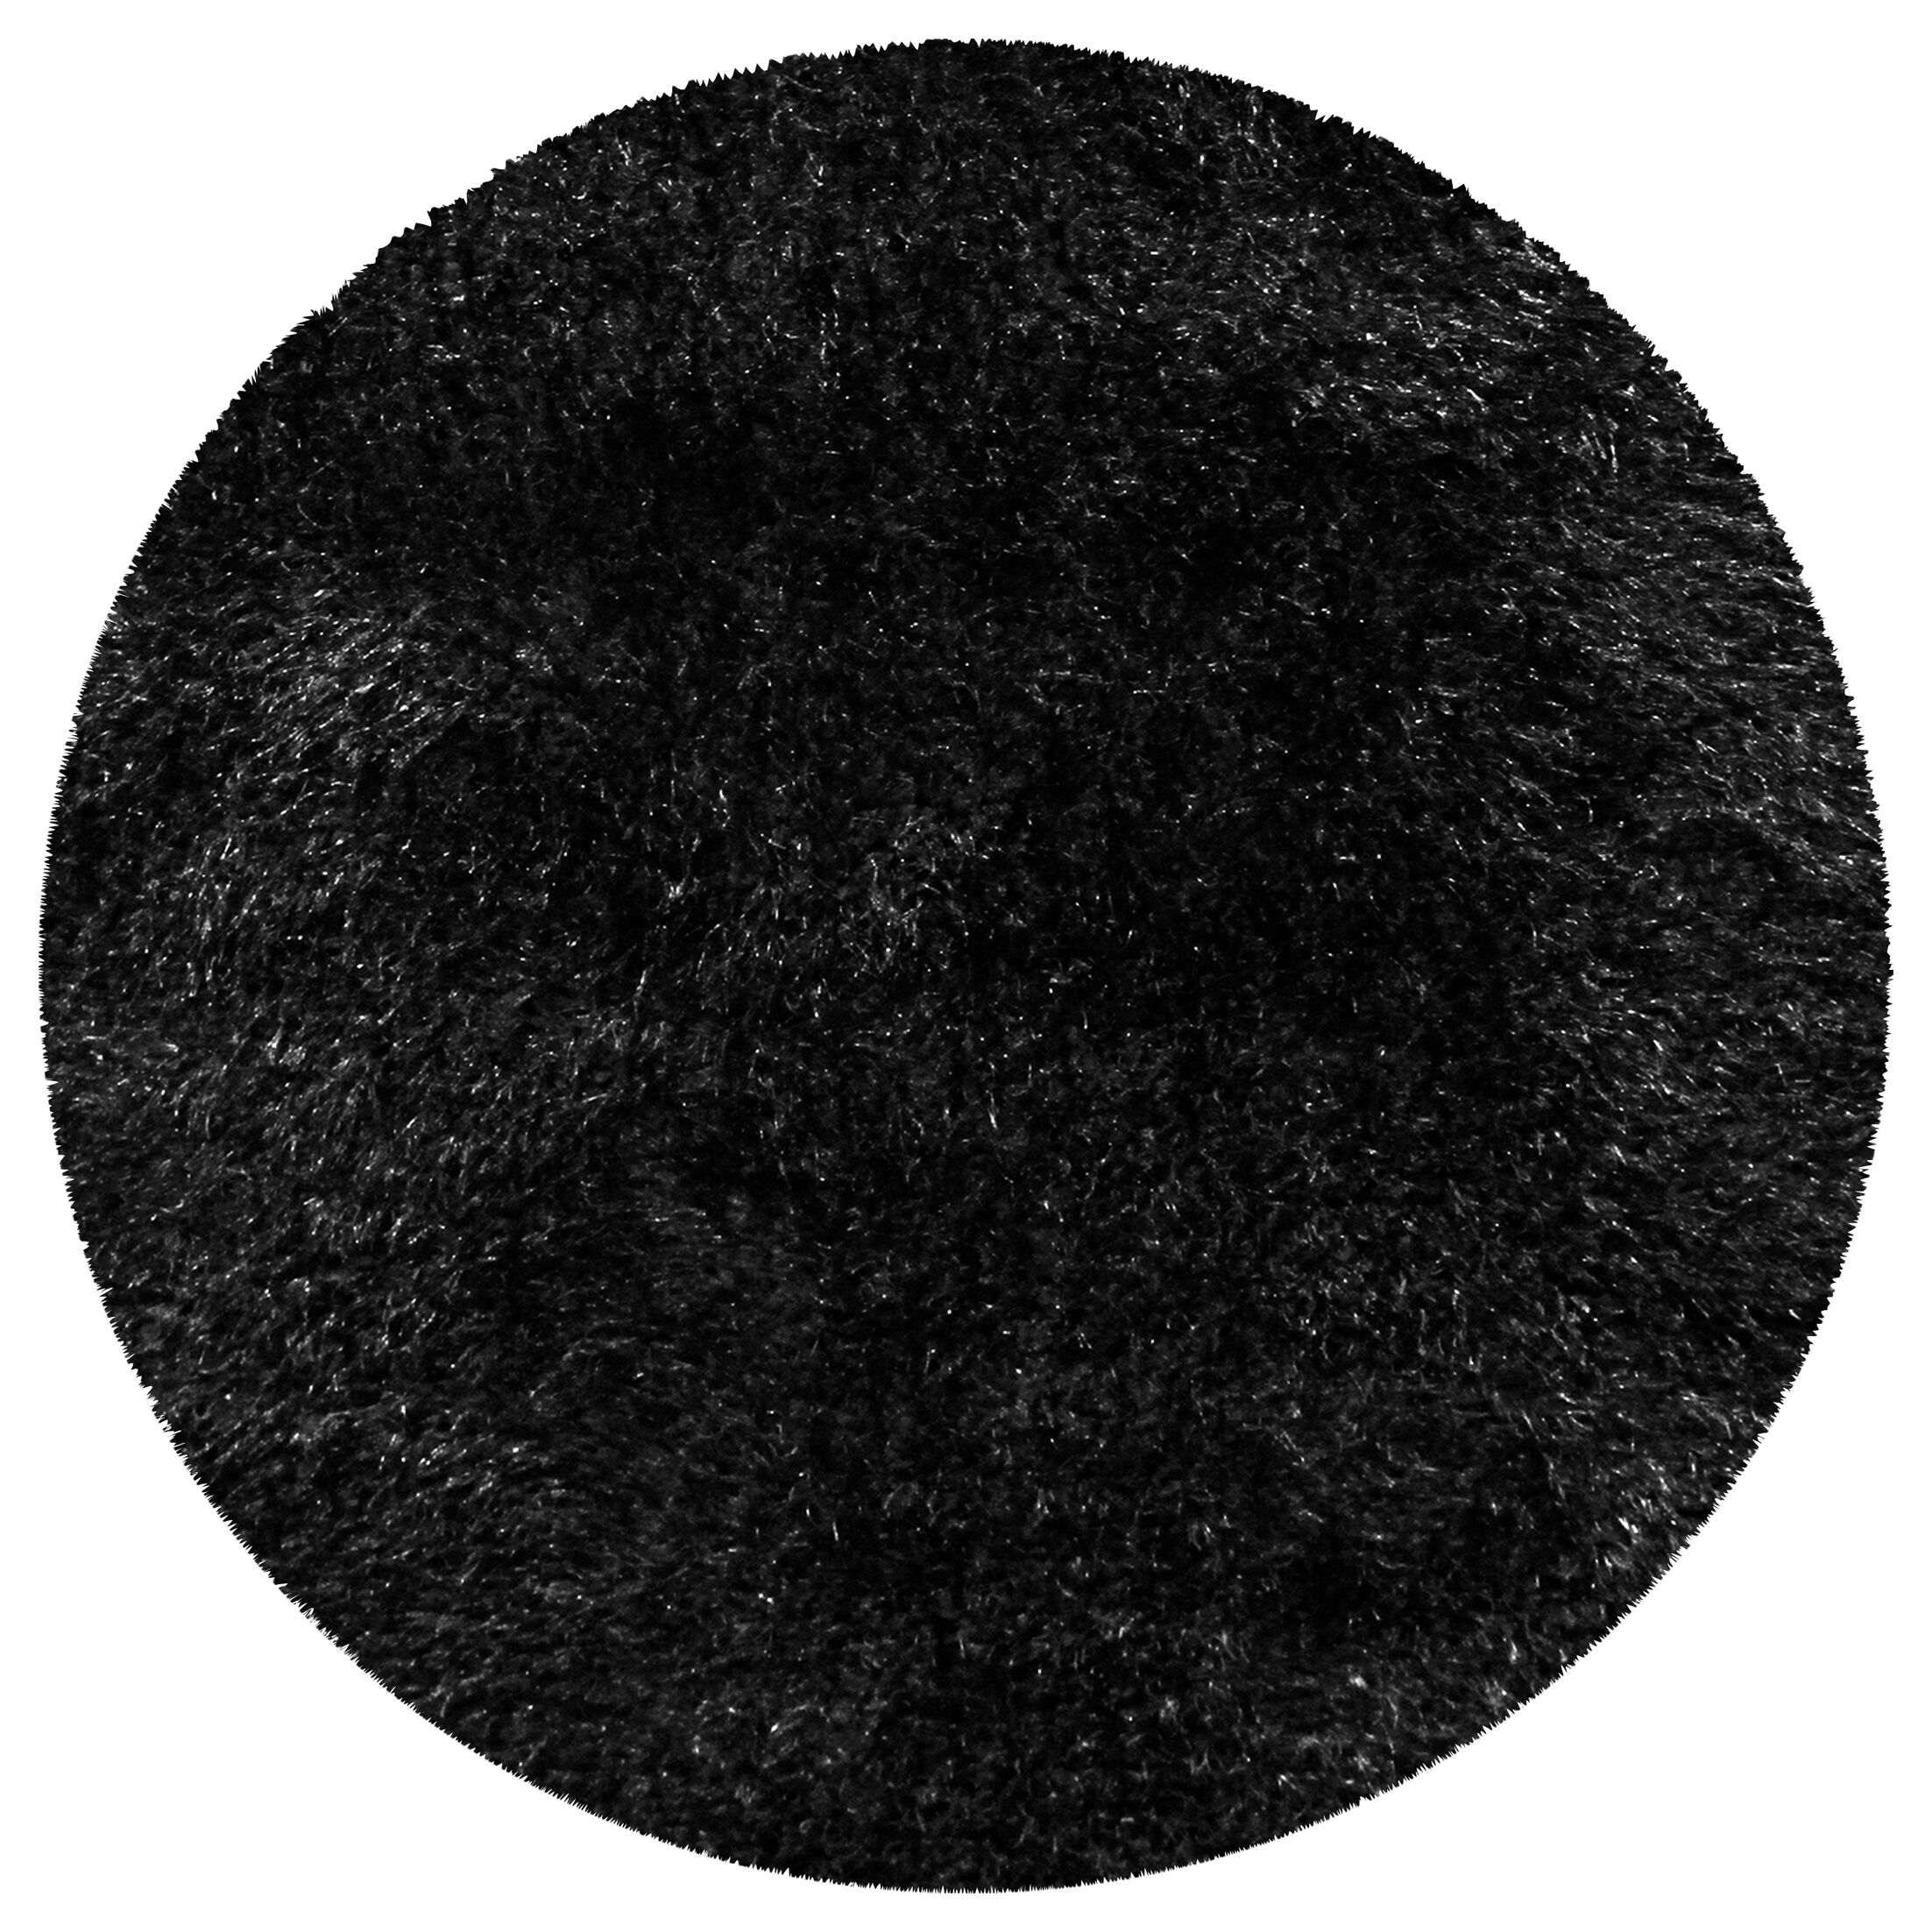 Catharine Hand-Woven Black Area Rug Rug Size: Round 6'6